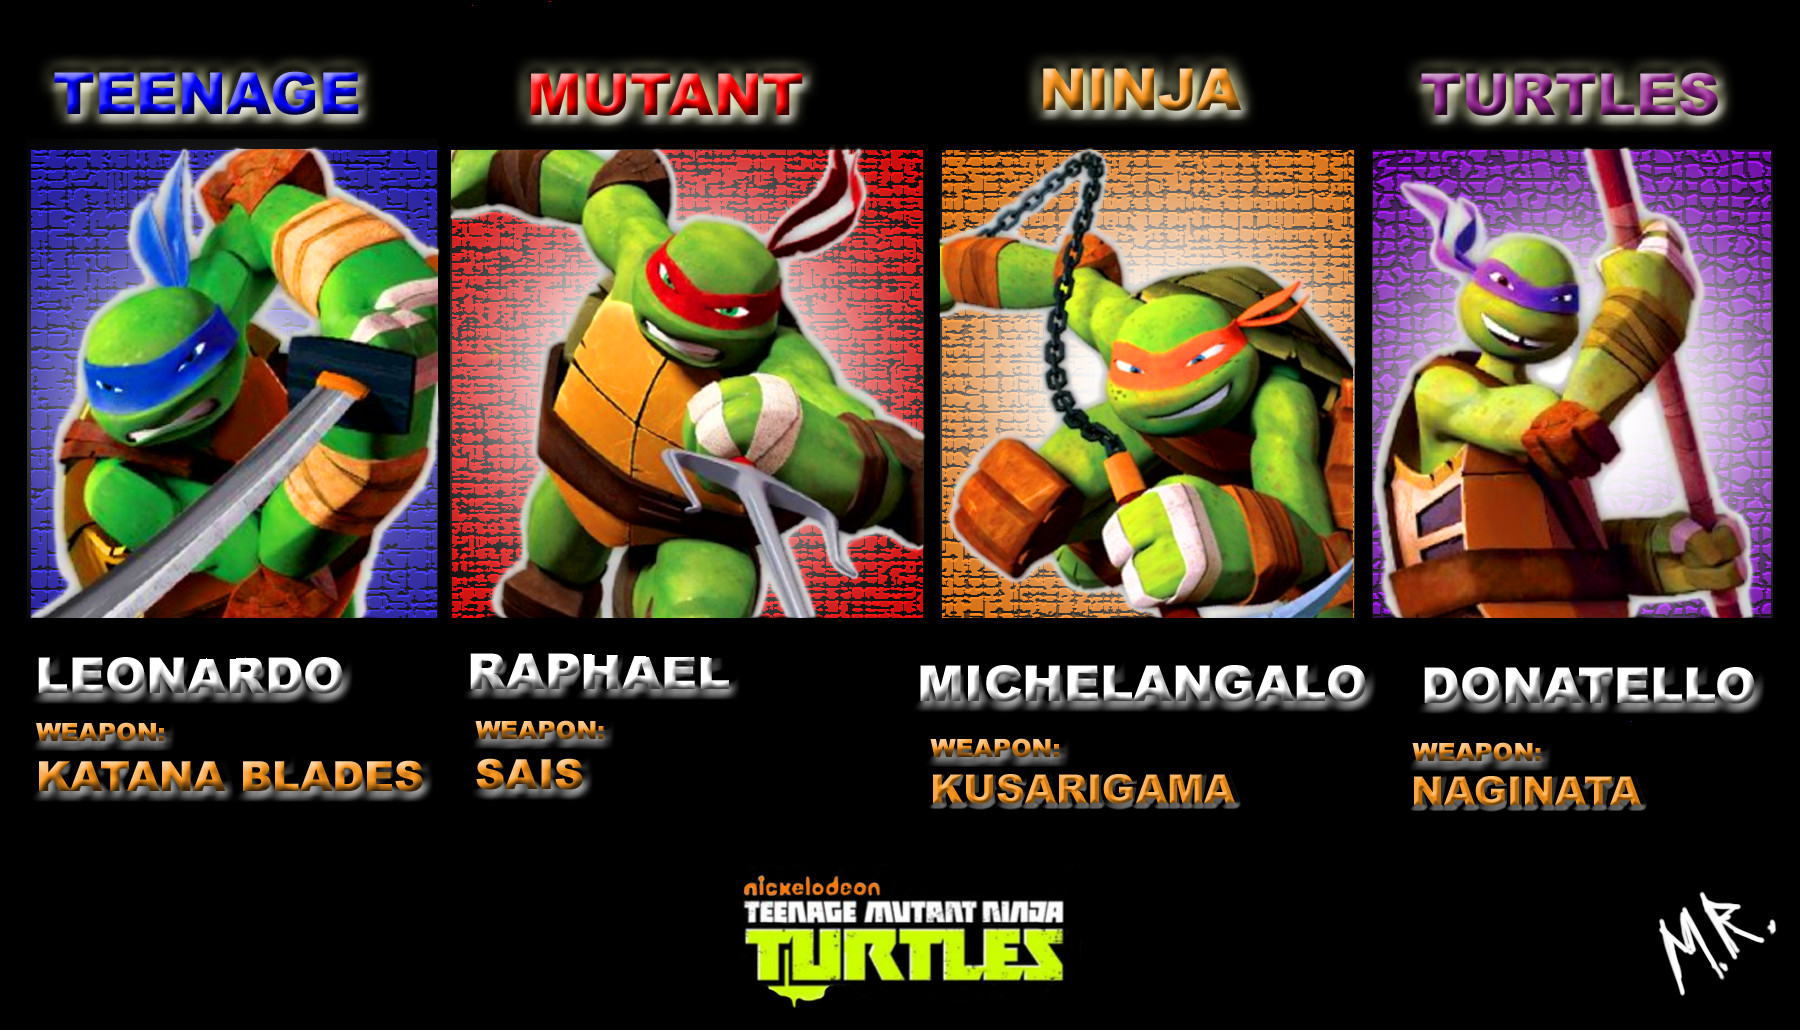 TMNT 2012 wallpapers (9) 1800x1030